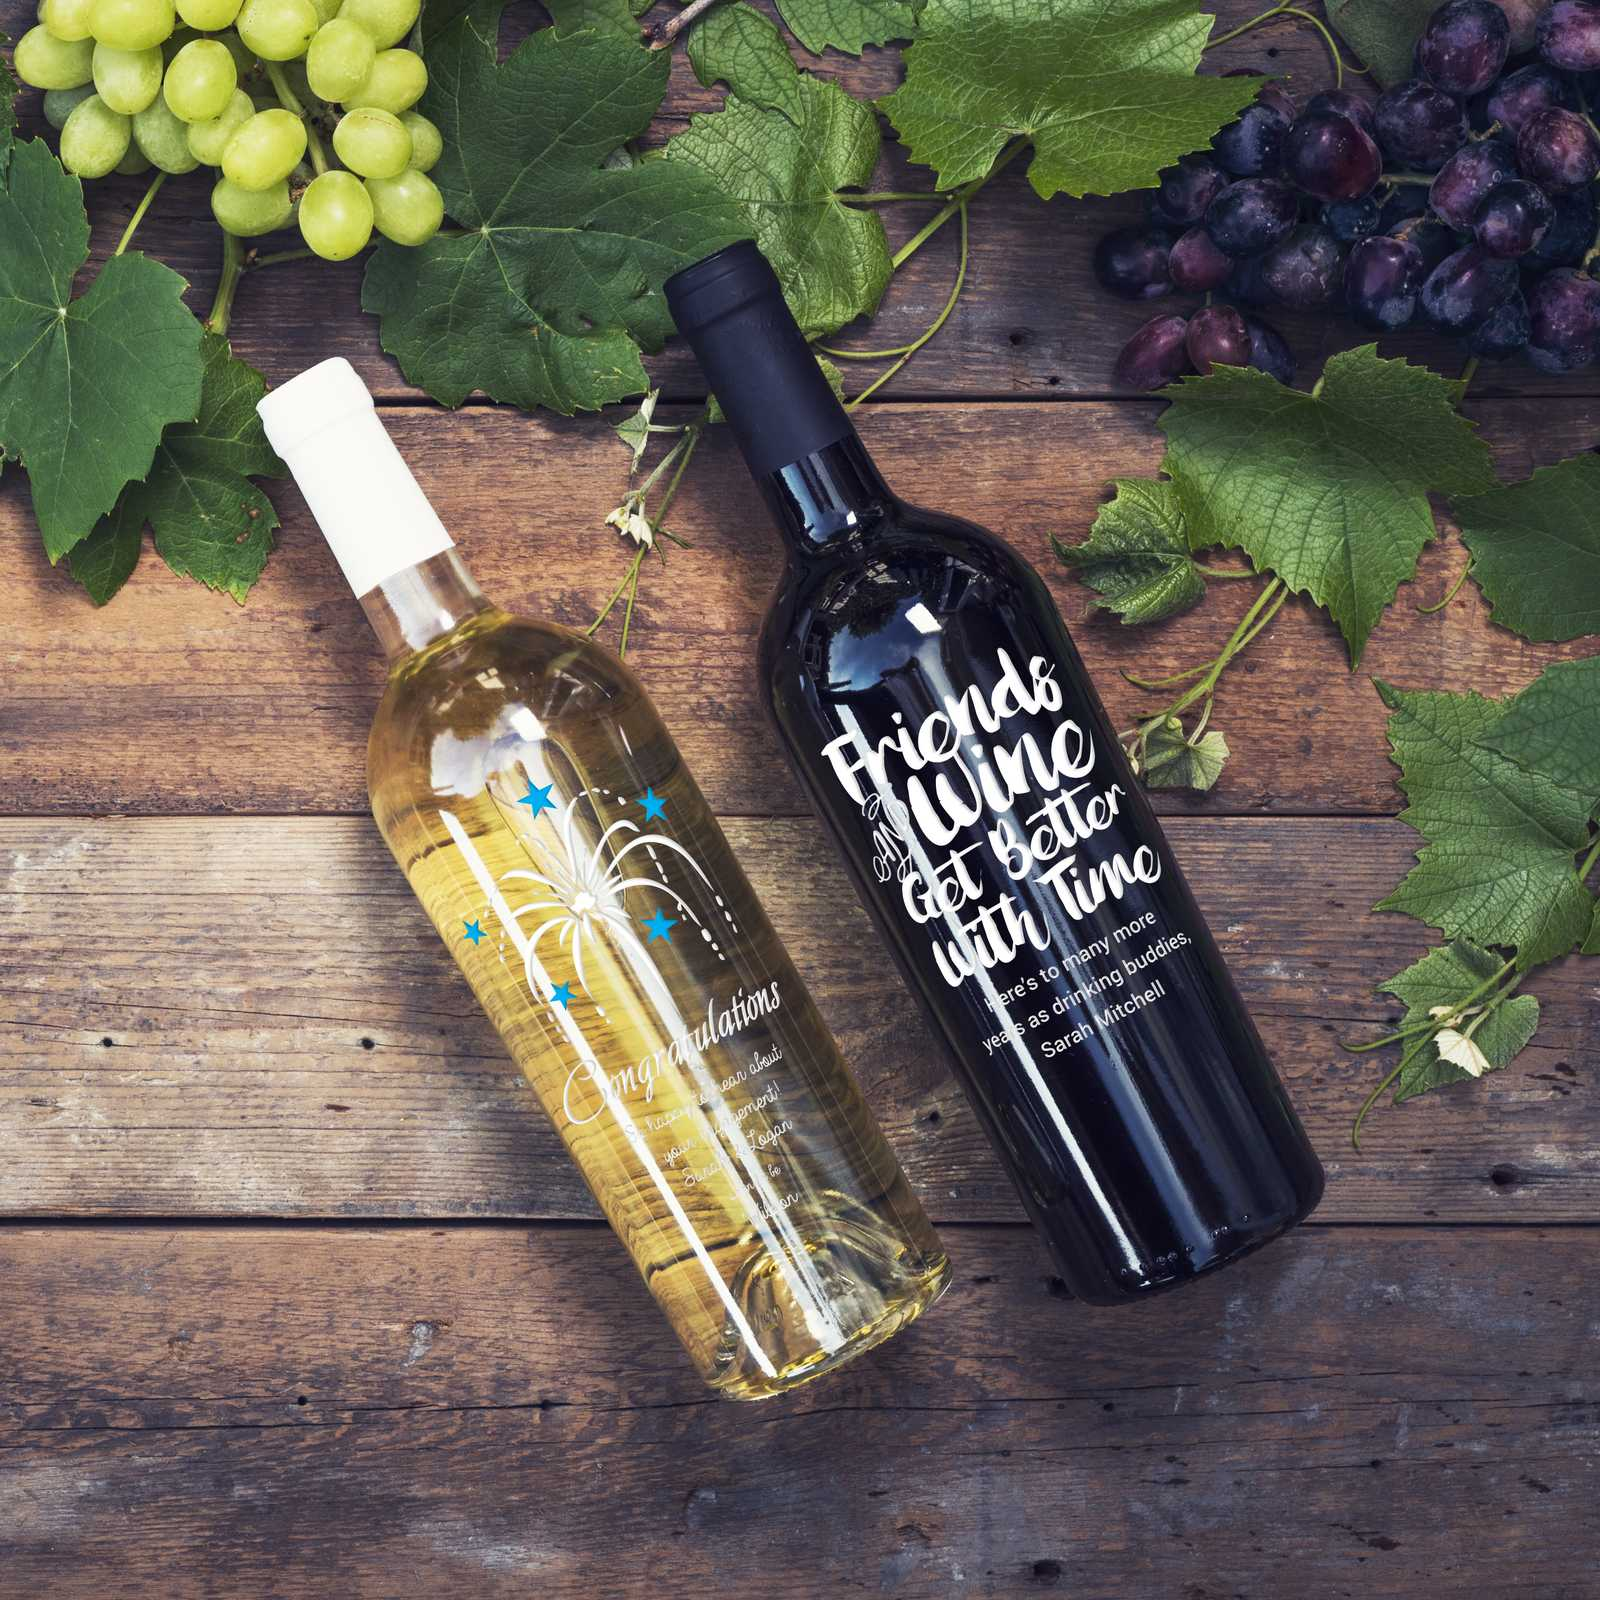 Personalized etched white wine and red wine bottles